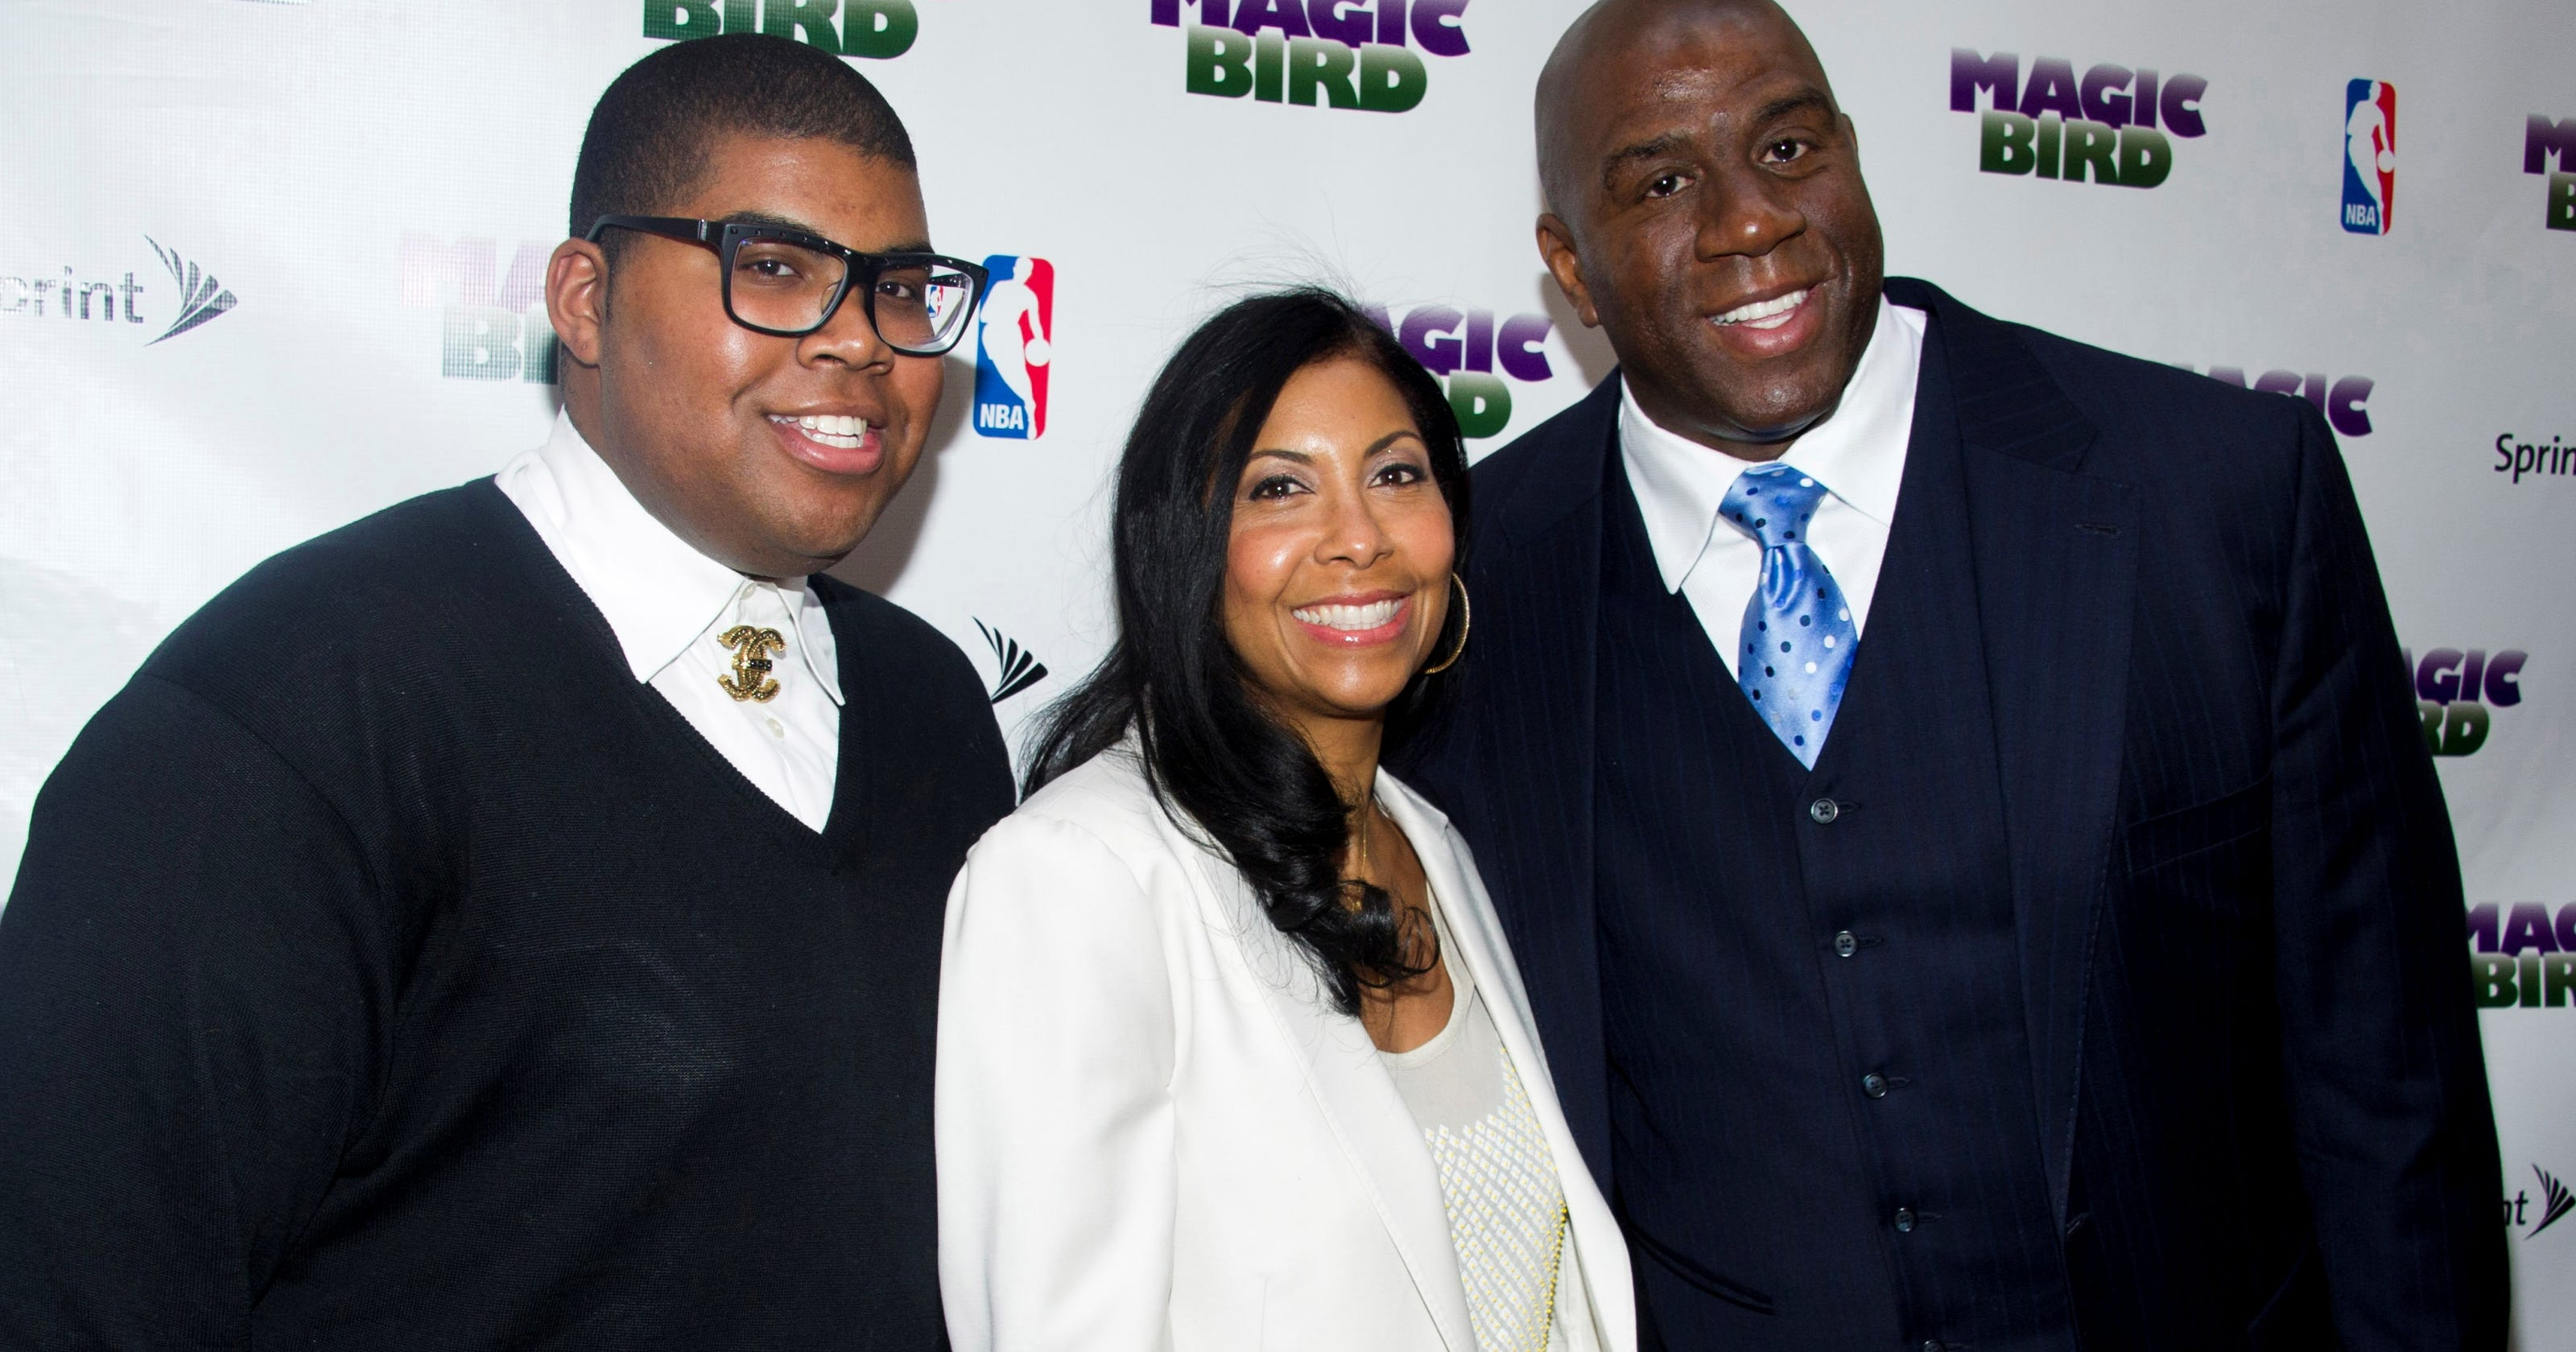 Tall City Delivery >> Magic's son says his family is supportive